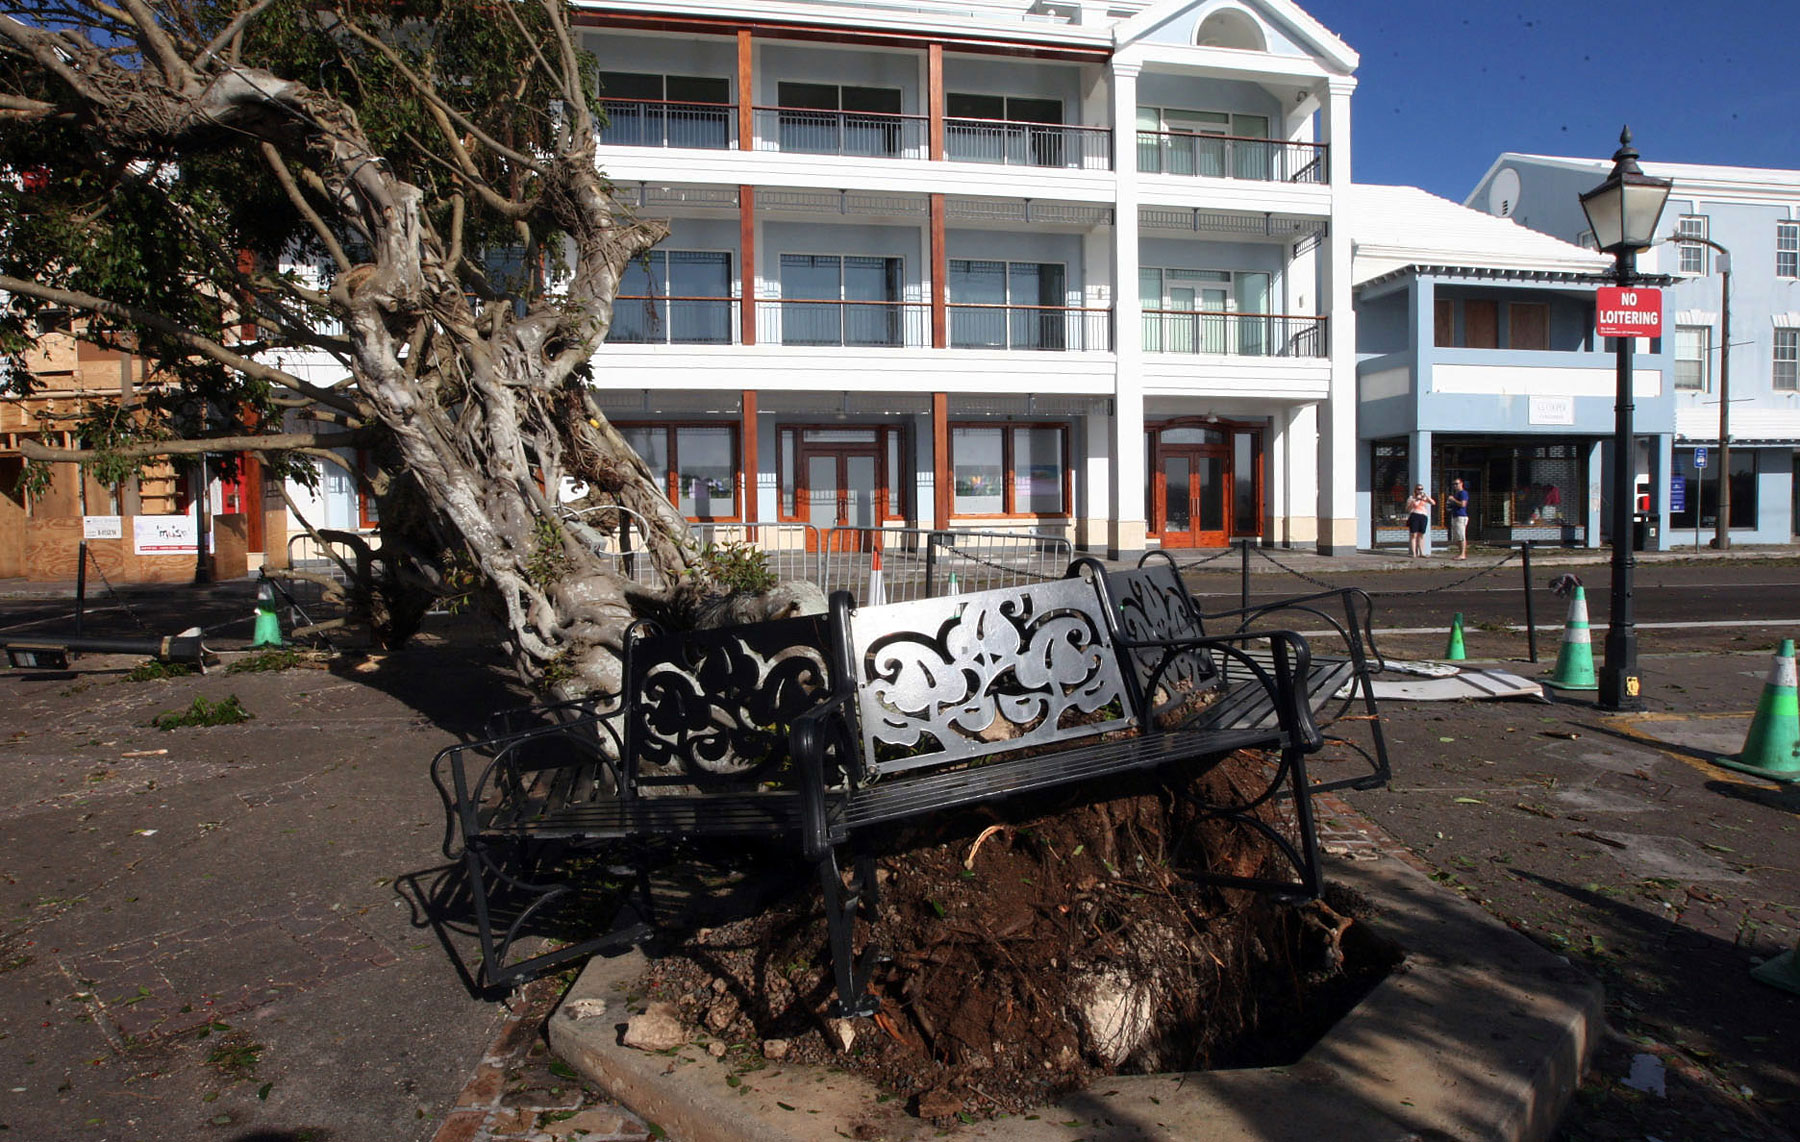 An uprooted tree lies across a street in Hamilton,  Bermuda,  Saturday Oct. 18, 2014 after Hurricane Gonzalo hit the island.